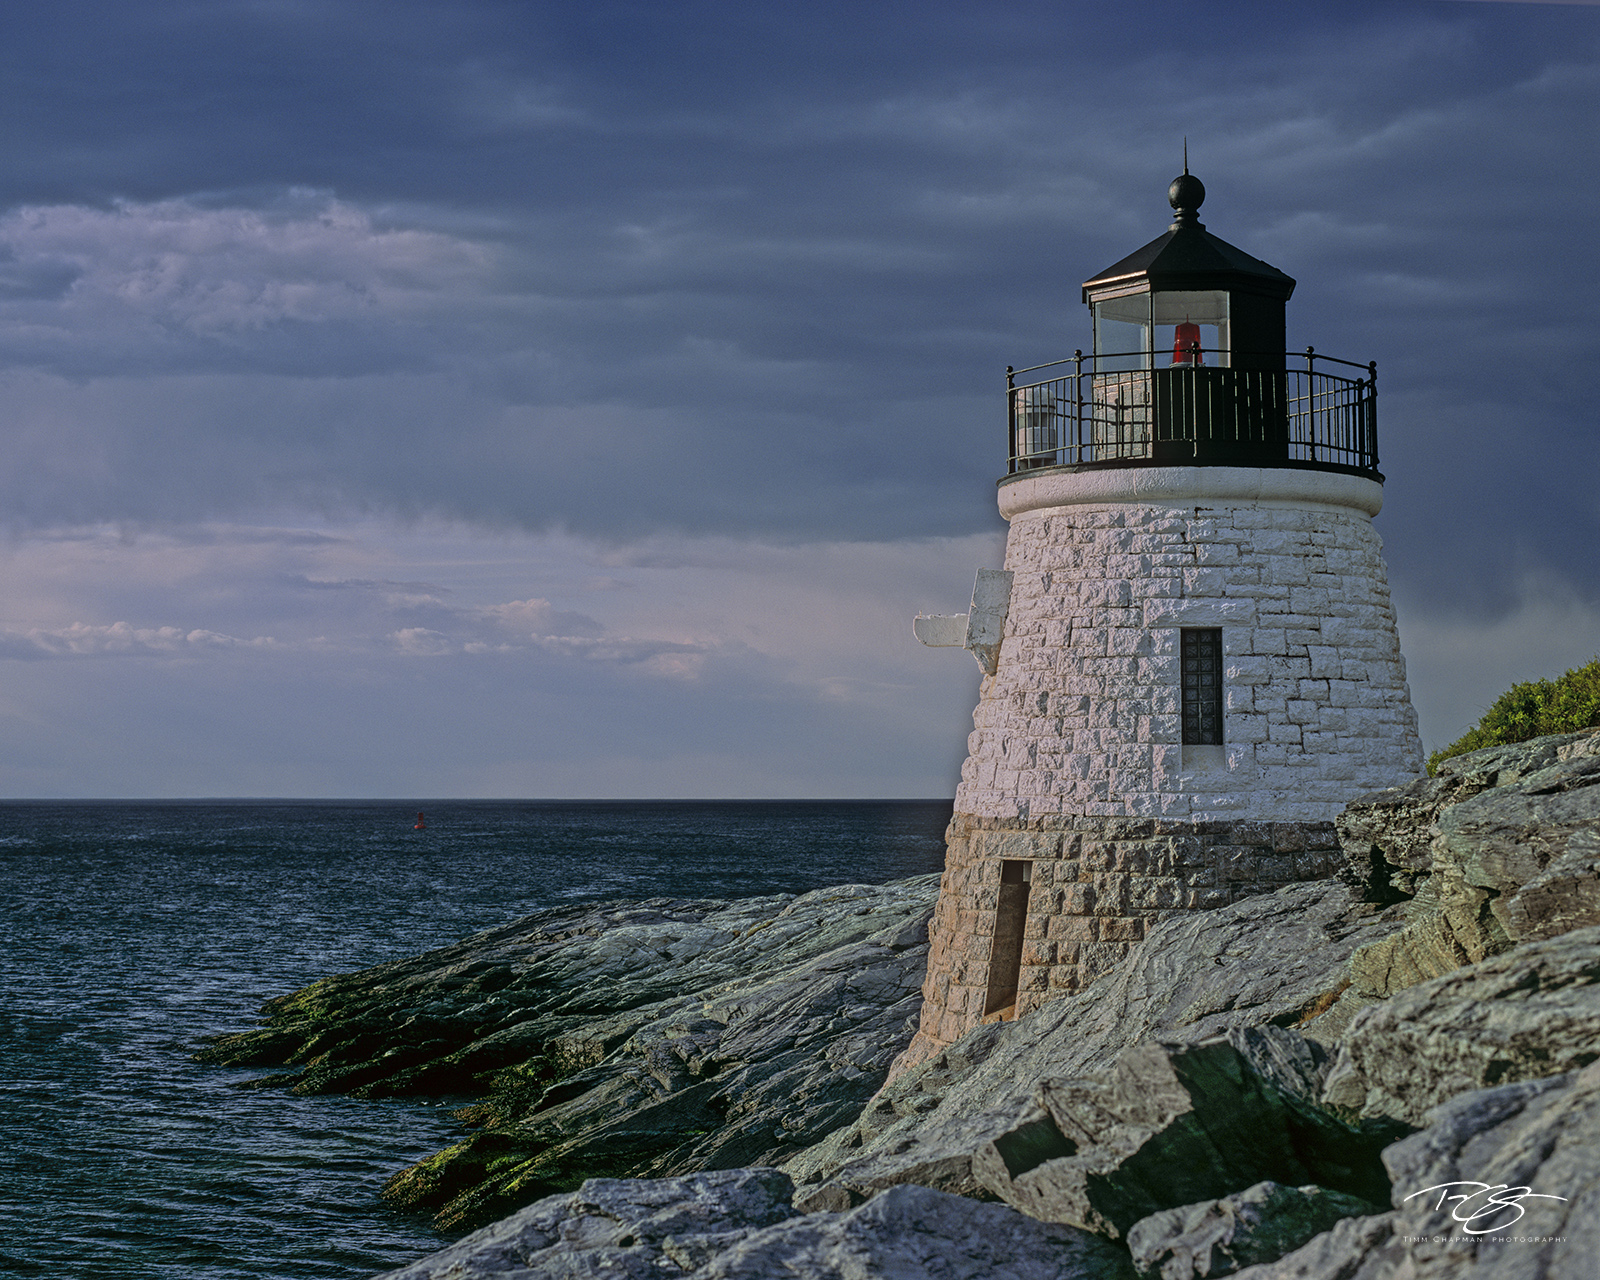 Rhode Island, calm before the storm, beacon, sentry of the sea, protector, guide, Newport, Castle Hill, Lighthouse, Lighthouses, Storm, Sea, Stormy Seas, Rough Water, Beacon, light house